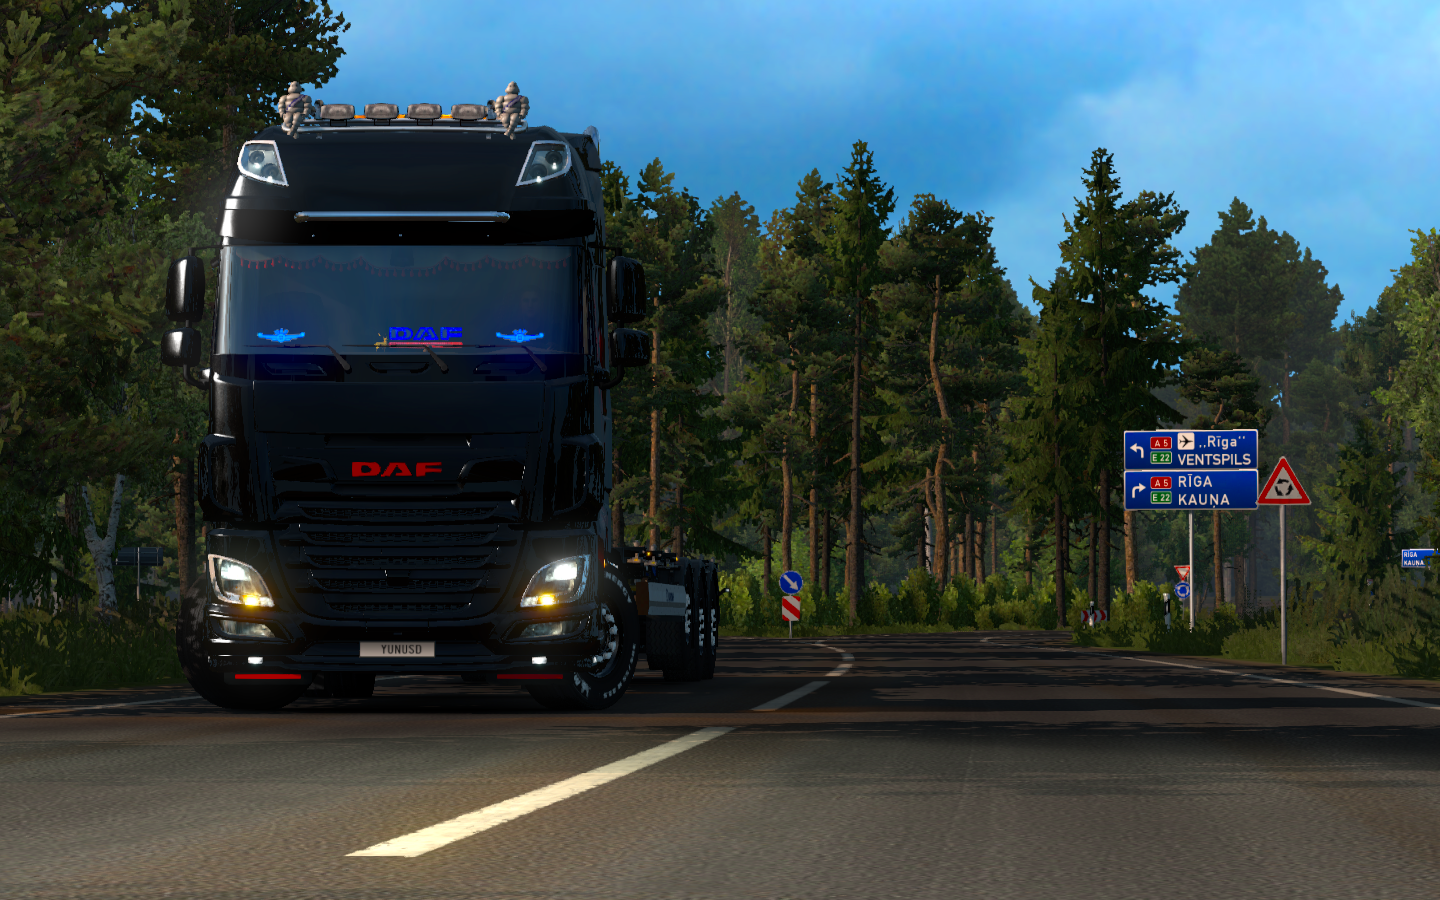 ets2_20181206_173424_00.png